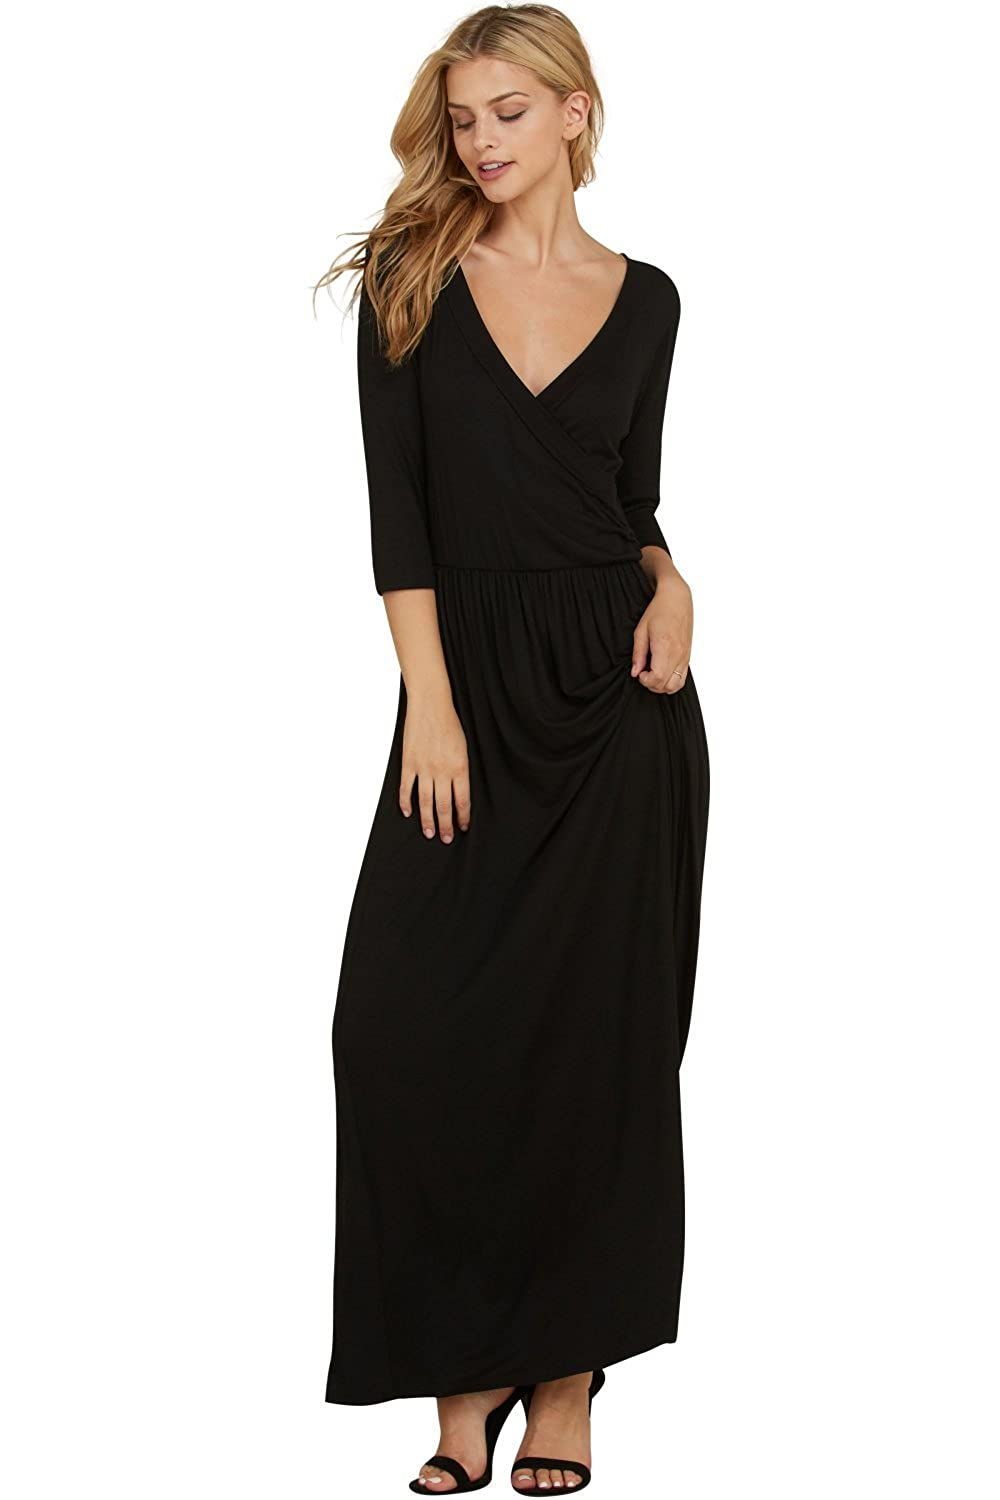 fb09bf8ef46 Keep it Under Wraps  Pleated Shirring Front Detail Dress Up or Dress Down  in Style with Our Trendy Maxi Dresses